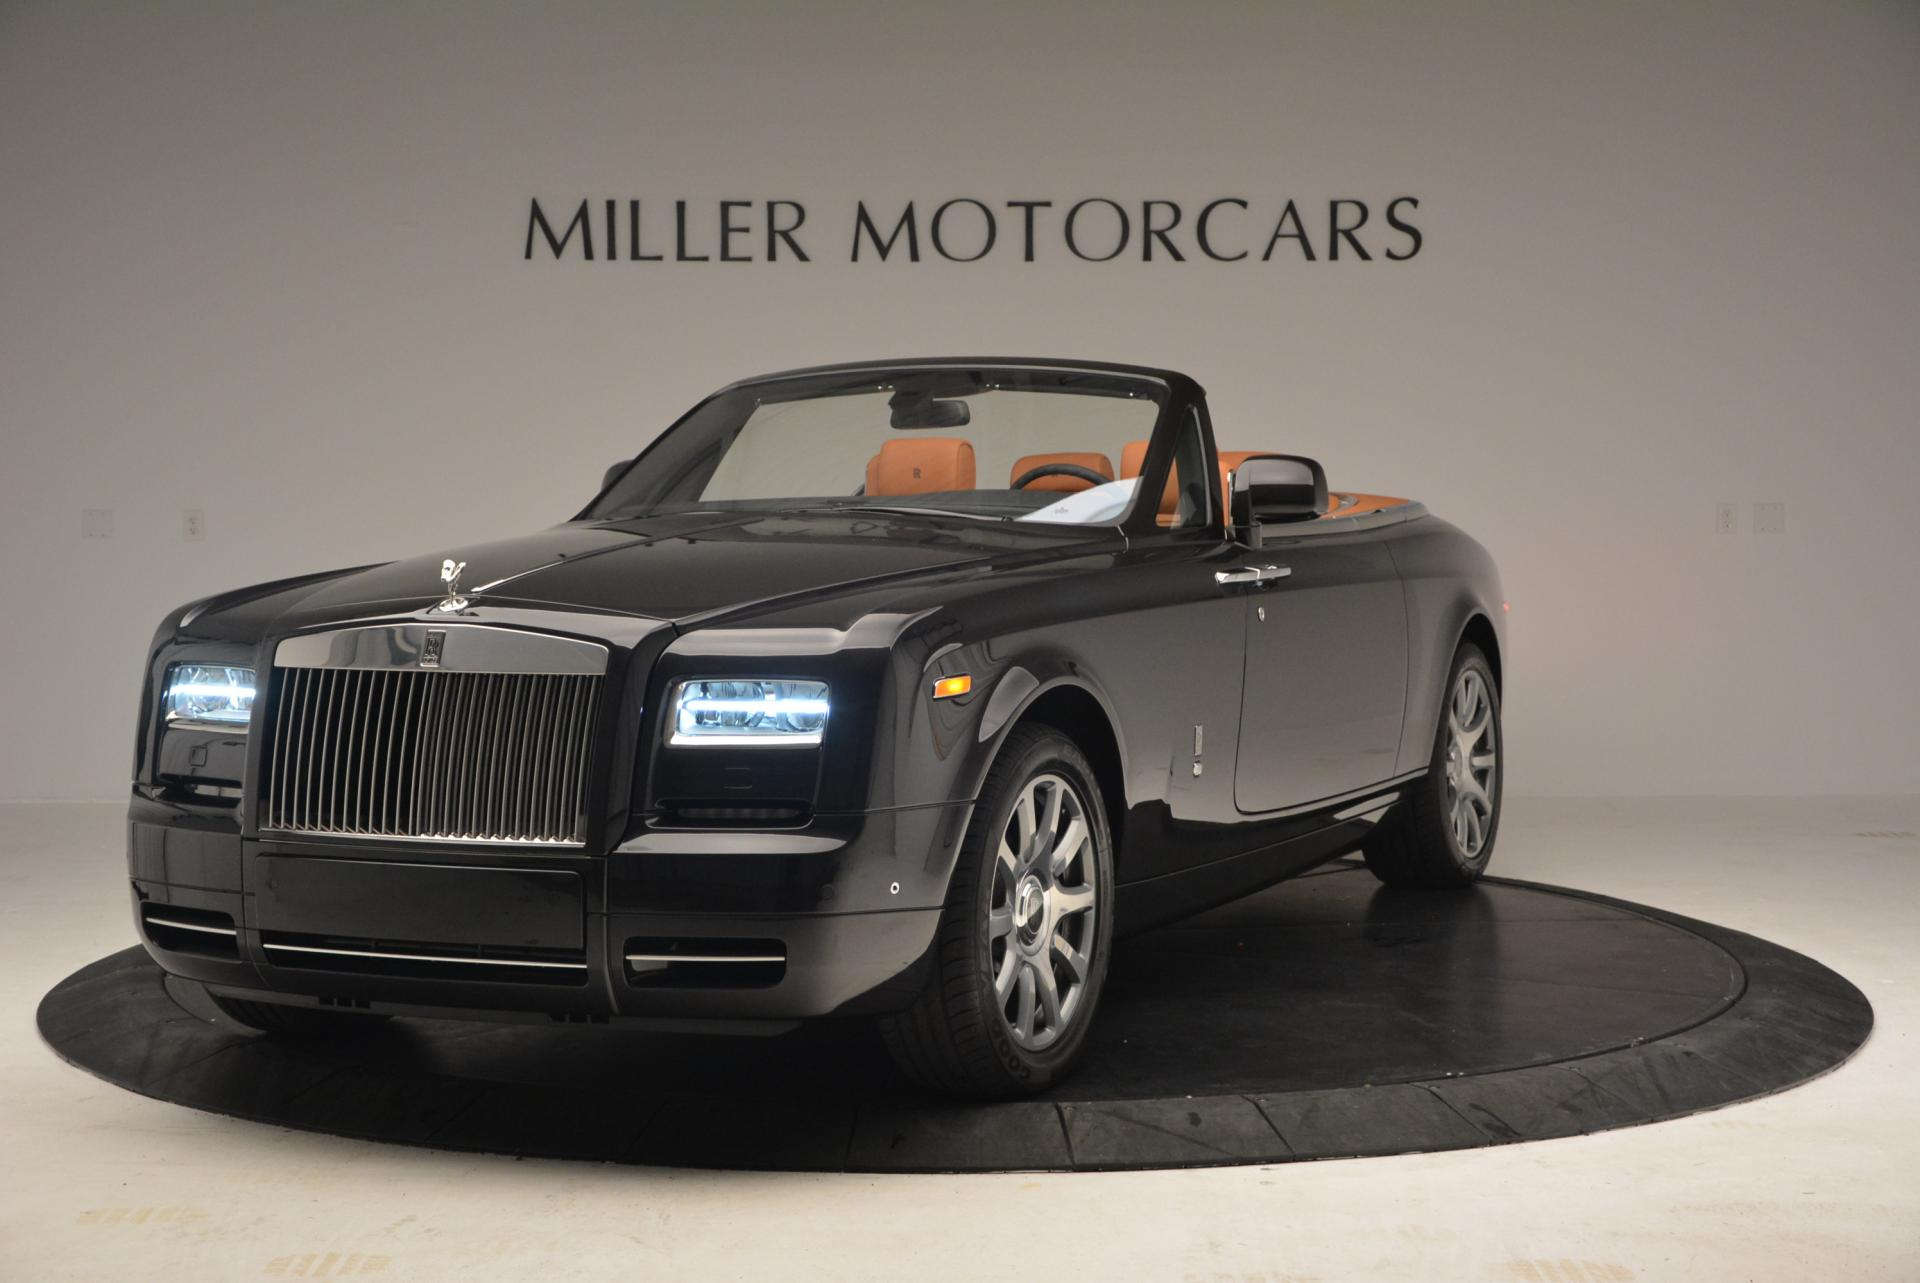 New 2016 Rolls-Royce Phantom Drophead Coupe Bespoke for sale Sold at Bentley Greenwich in Greenwich CT 06830 1